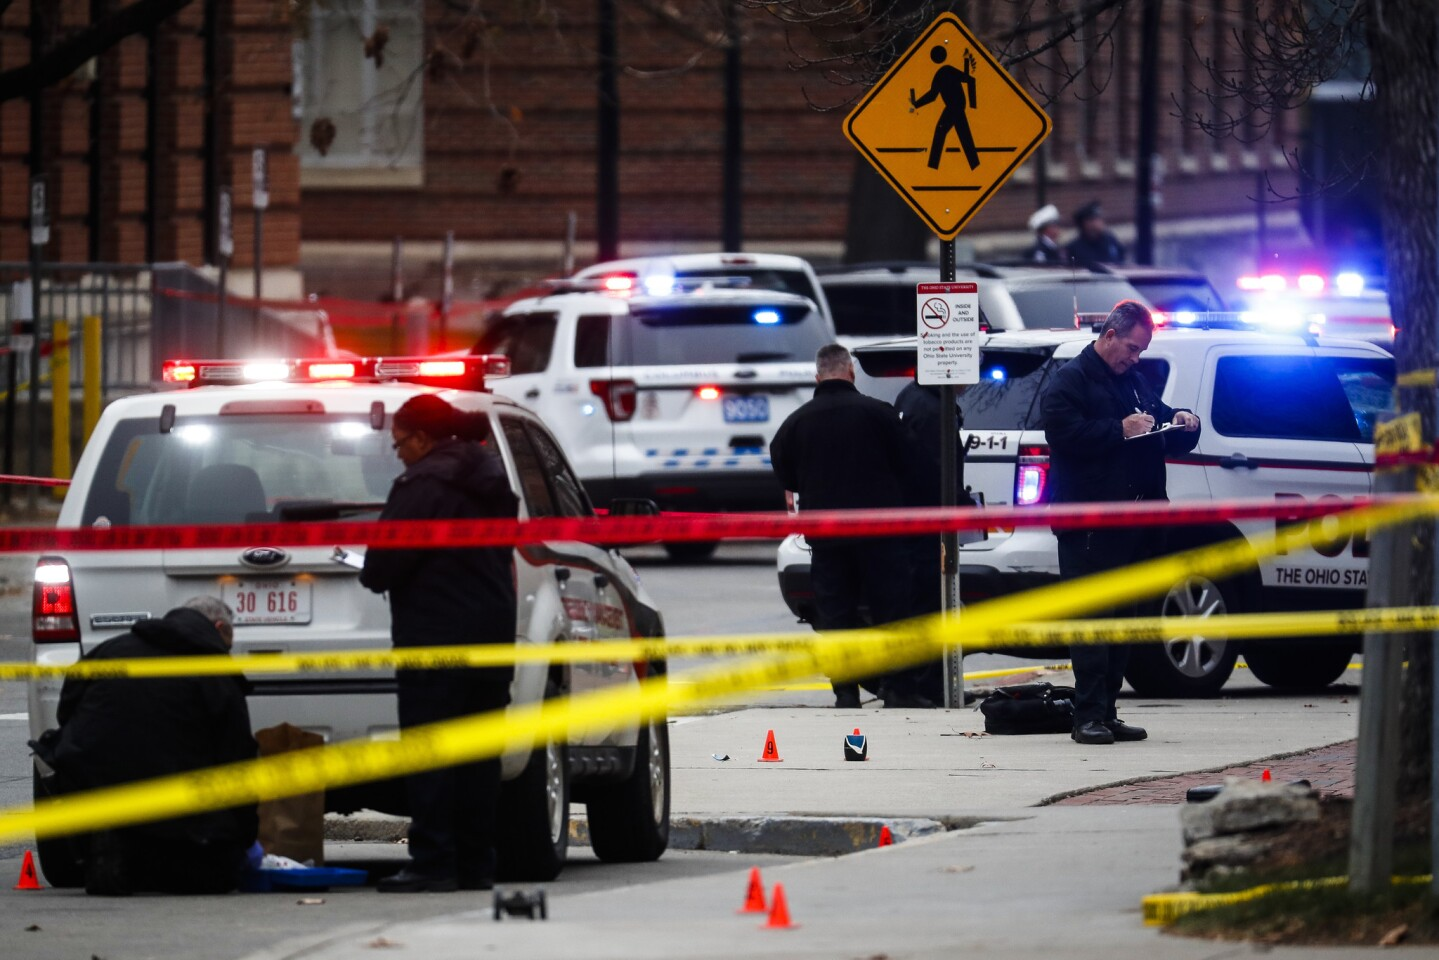 Crime scene investigators collect evidence from the scene of an attack on campus at Ohio State University.